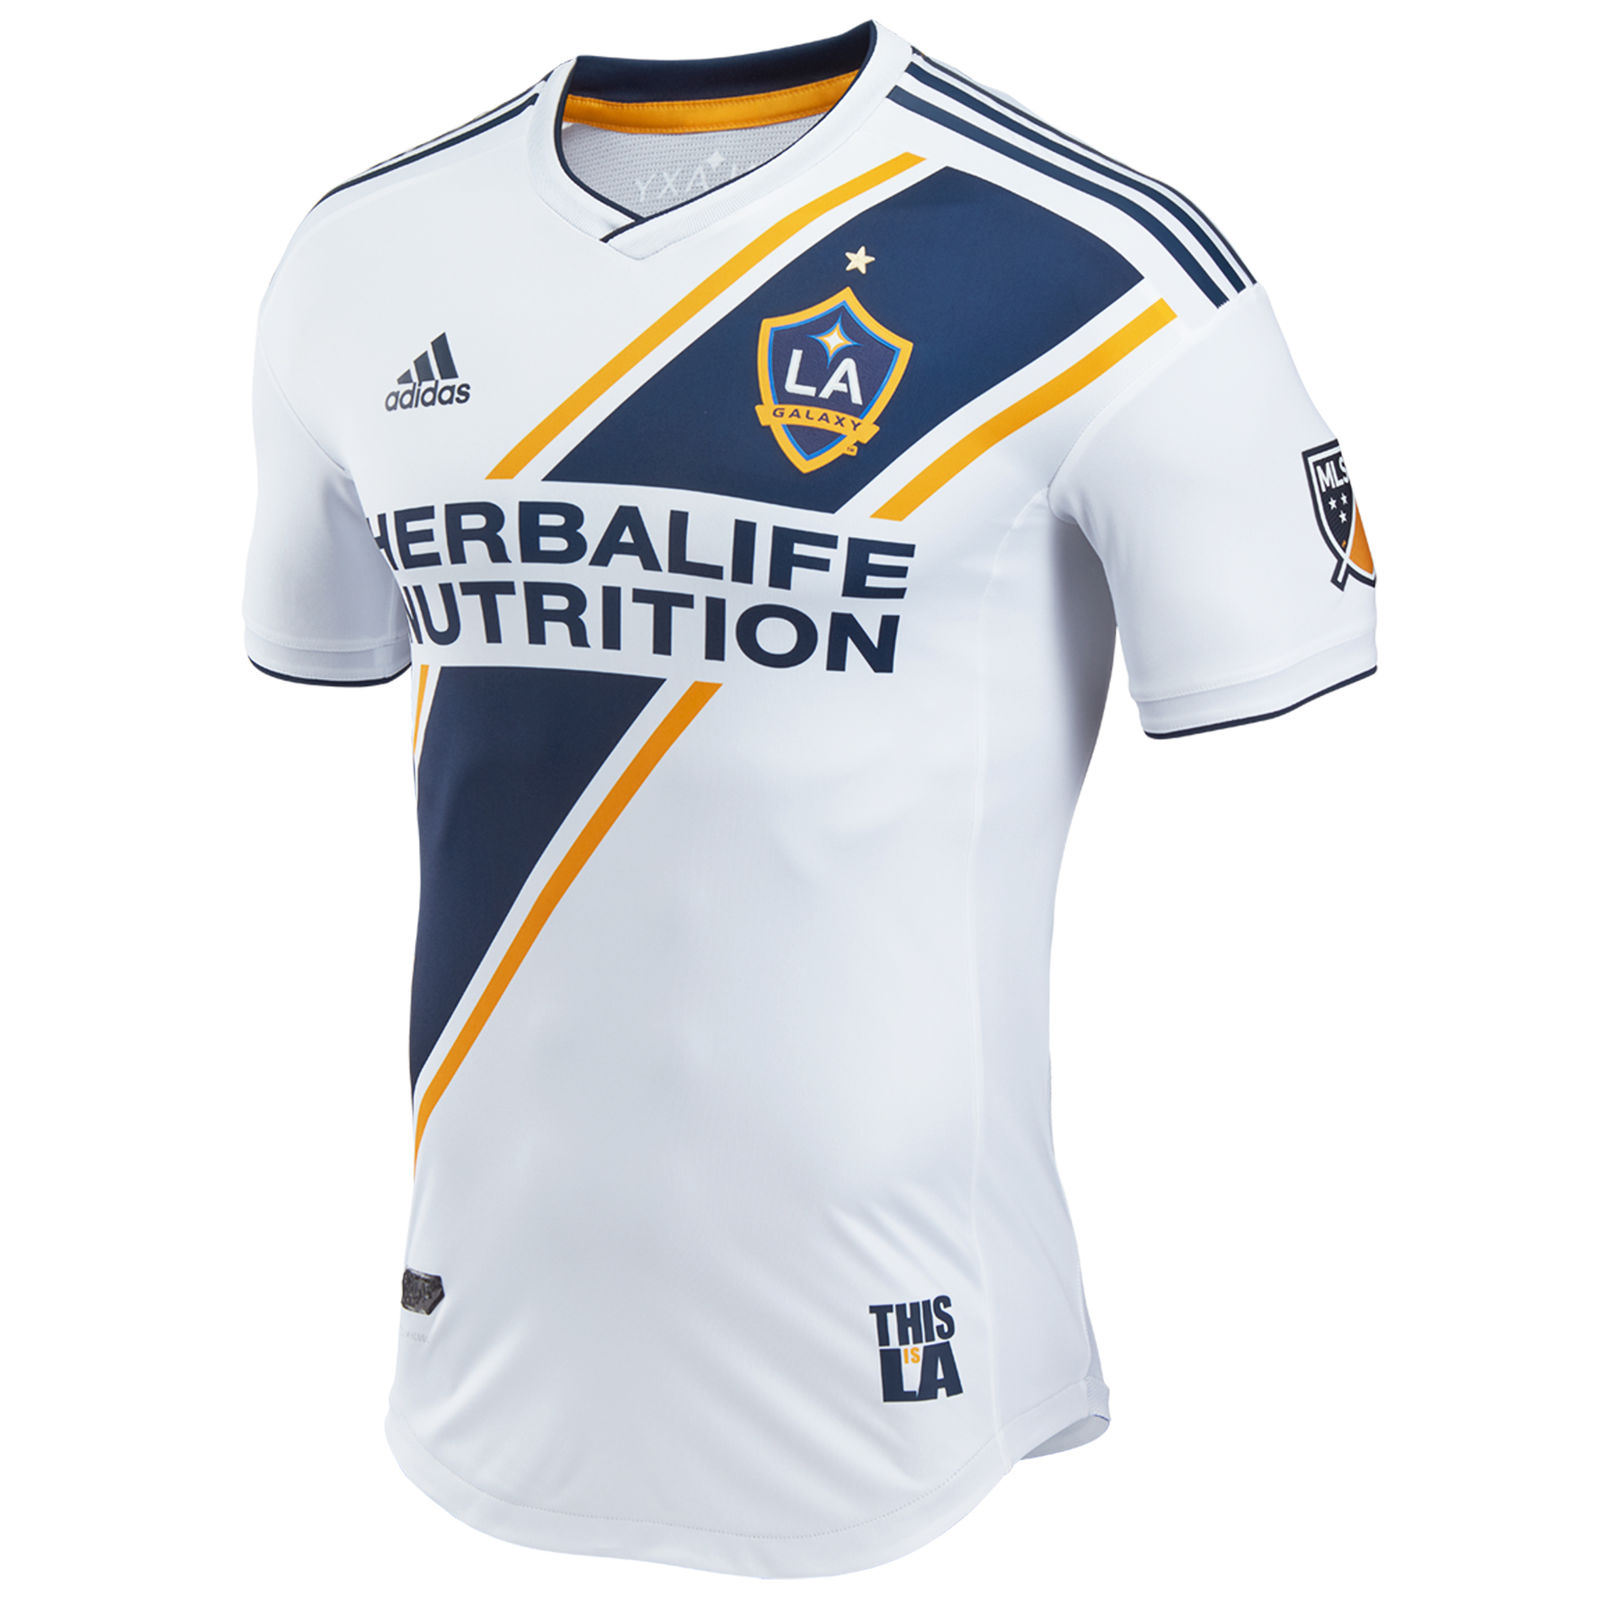 pretty nice 38fbc c5309 LA Galaxy 2019 Away Kit Released - Footy Headlines